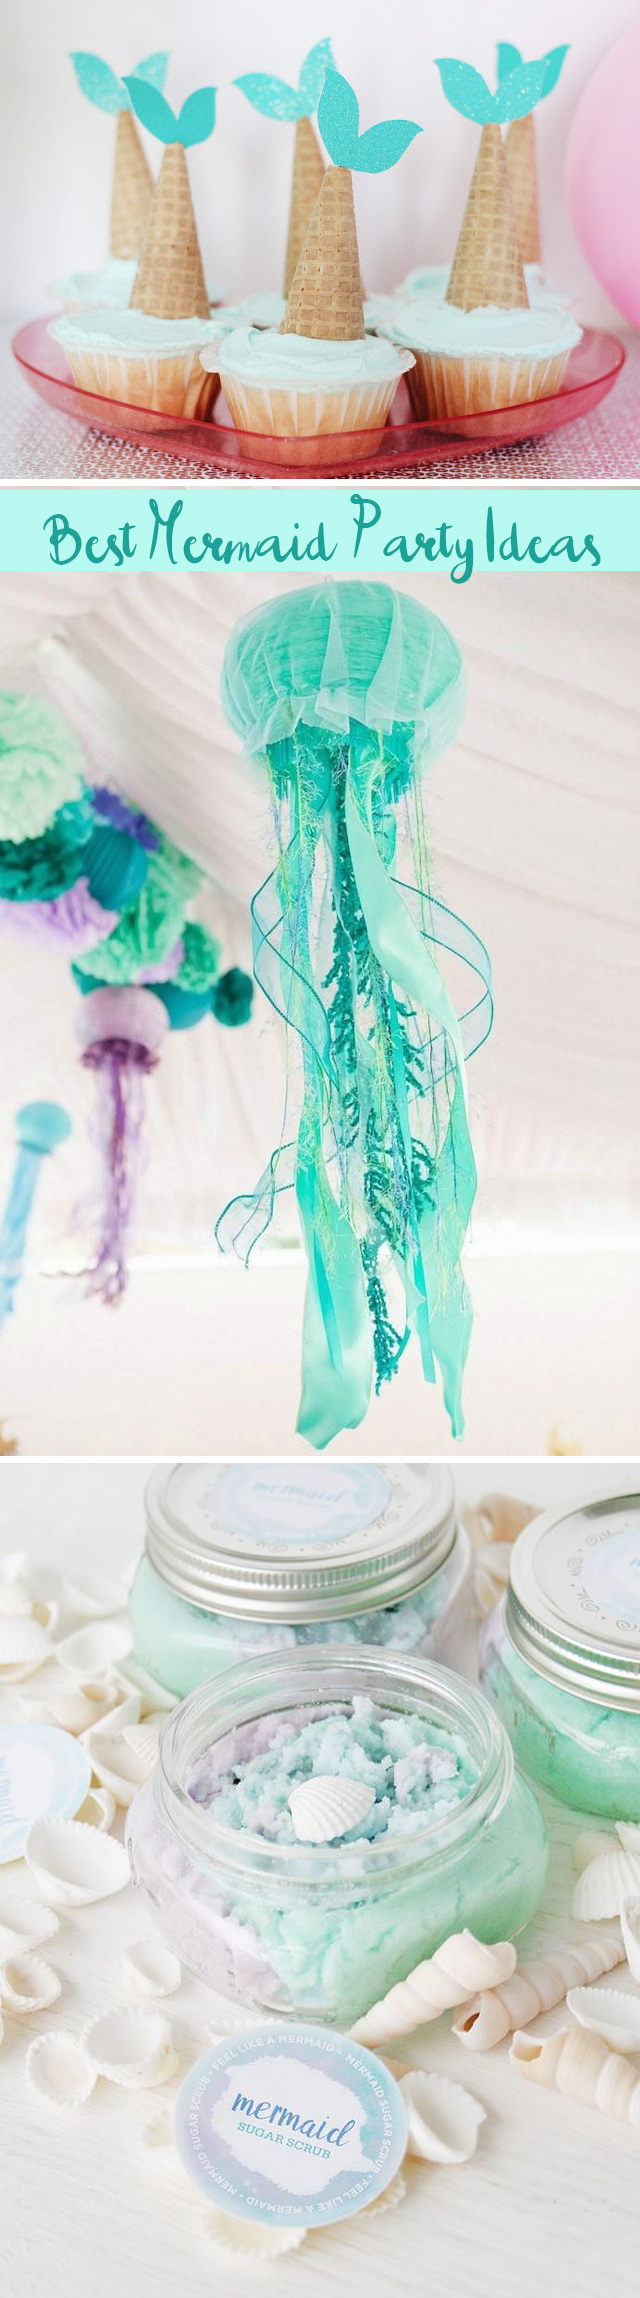 Best Mermaid Party Ideas